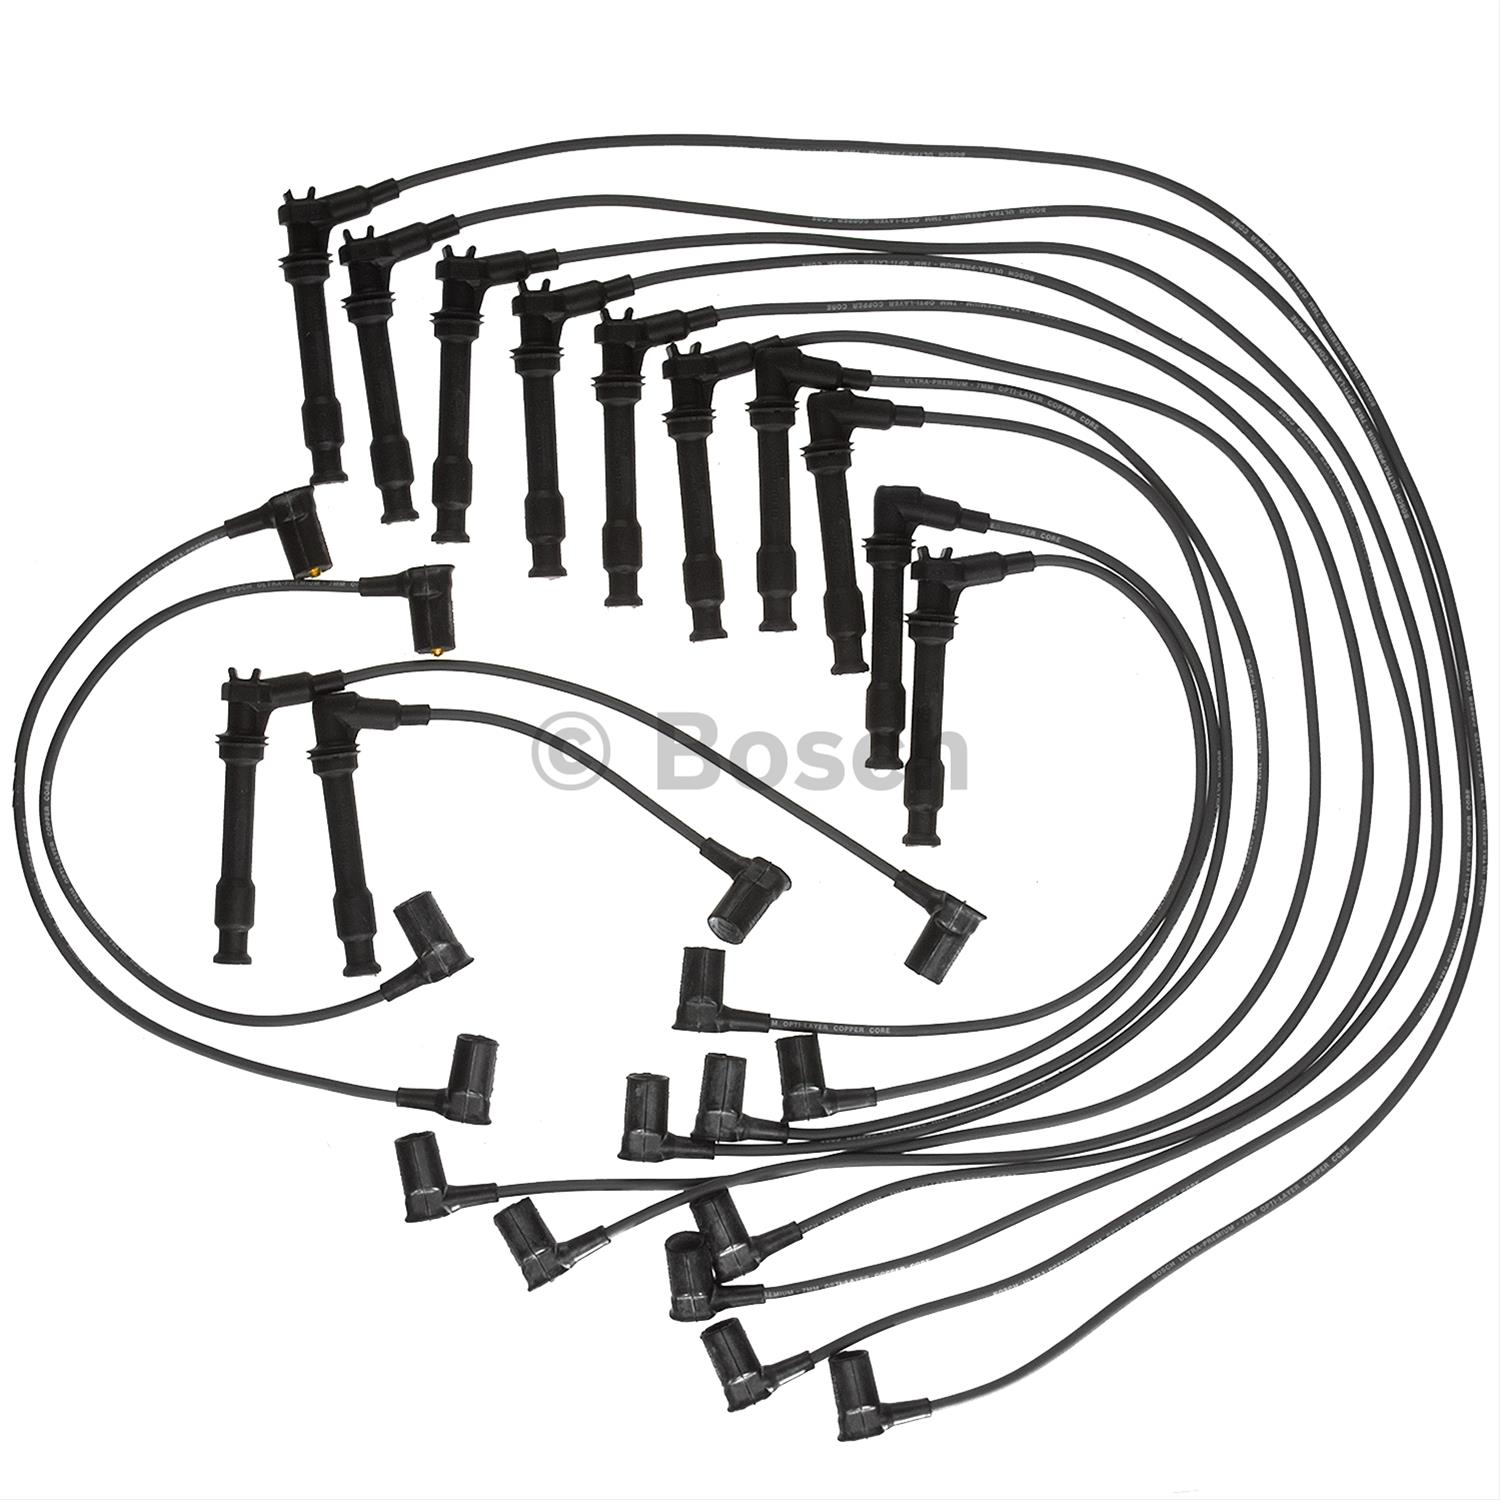 bosch premium spark plug wire sets 09264 free shipping on orders 1999 Ford Van Seat Covers bosch premium spark plug wire sets 09264 free shipping on orders over 99 at summit racing